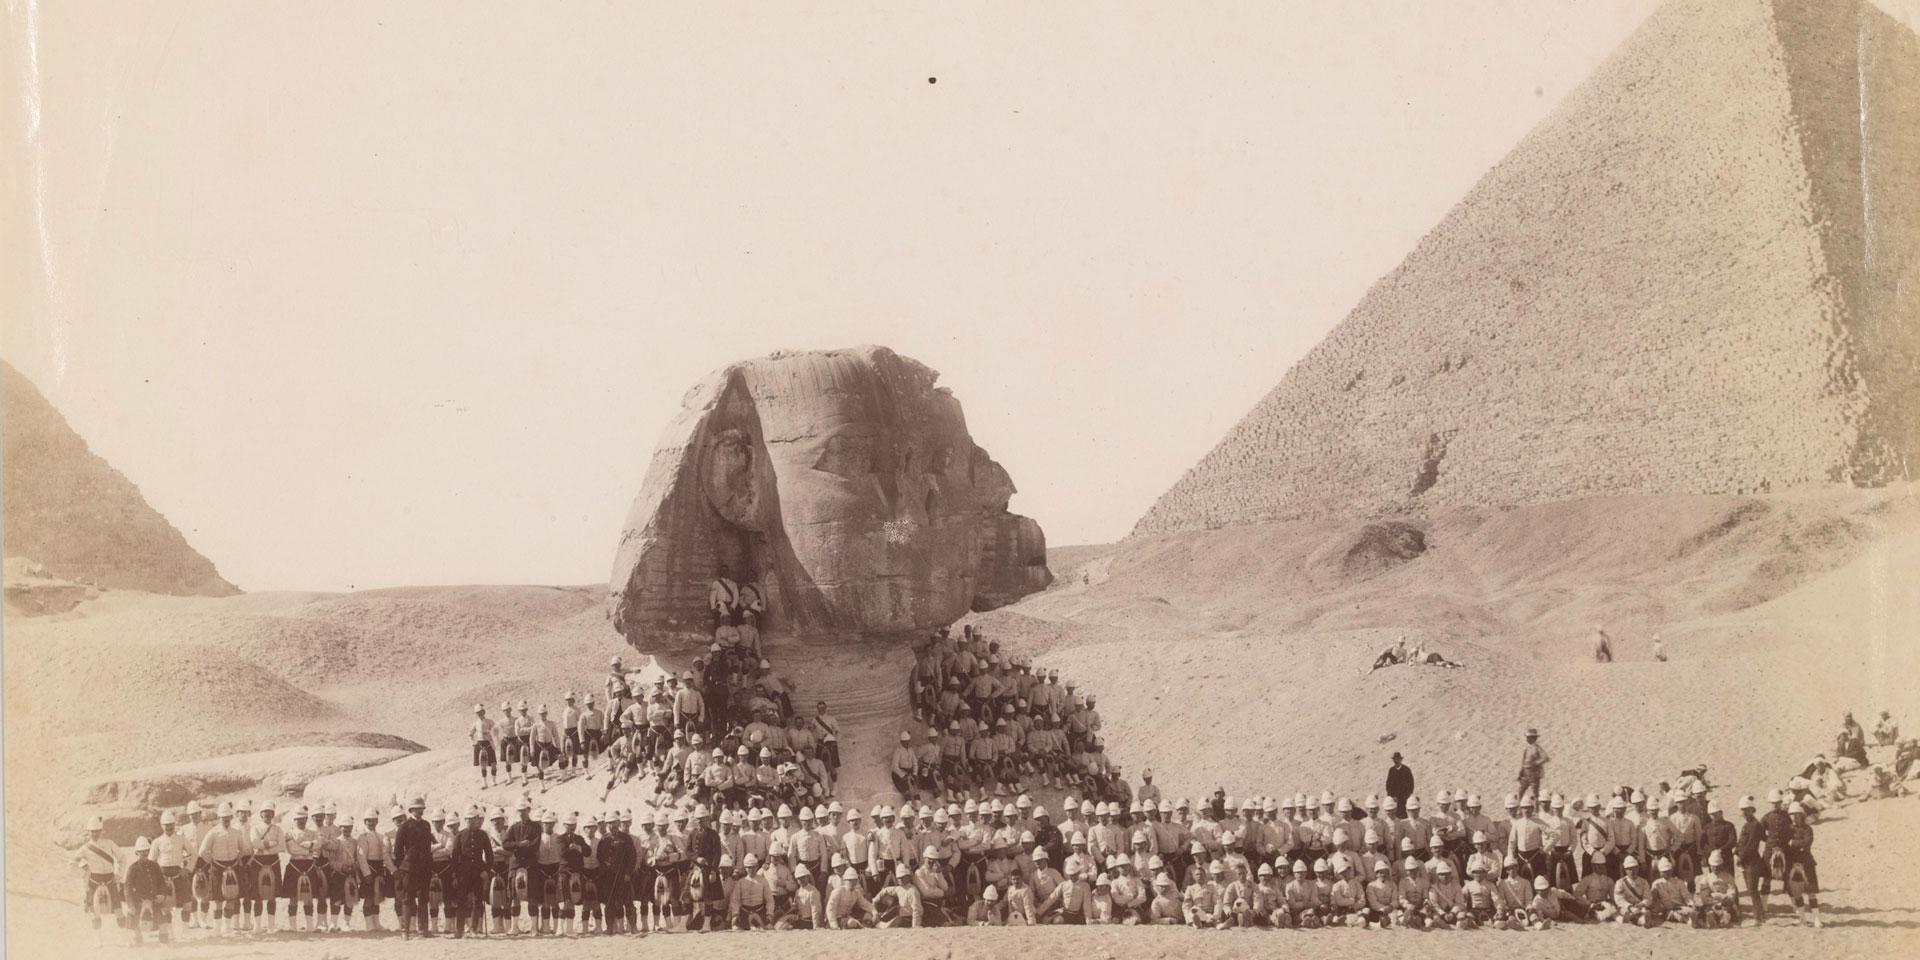 42nd Highlanders in front of the Sphinx at Giza, 1882